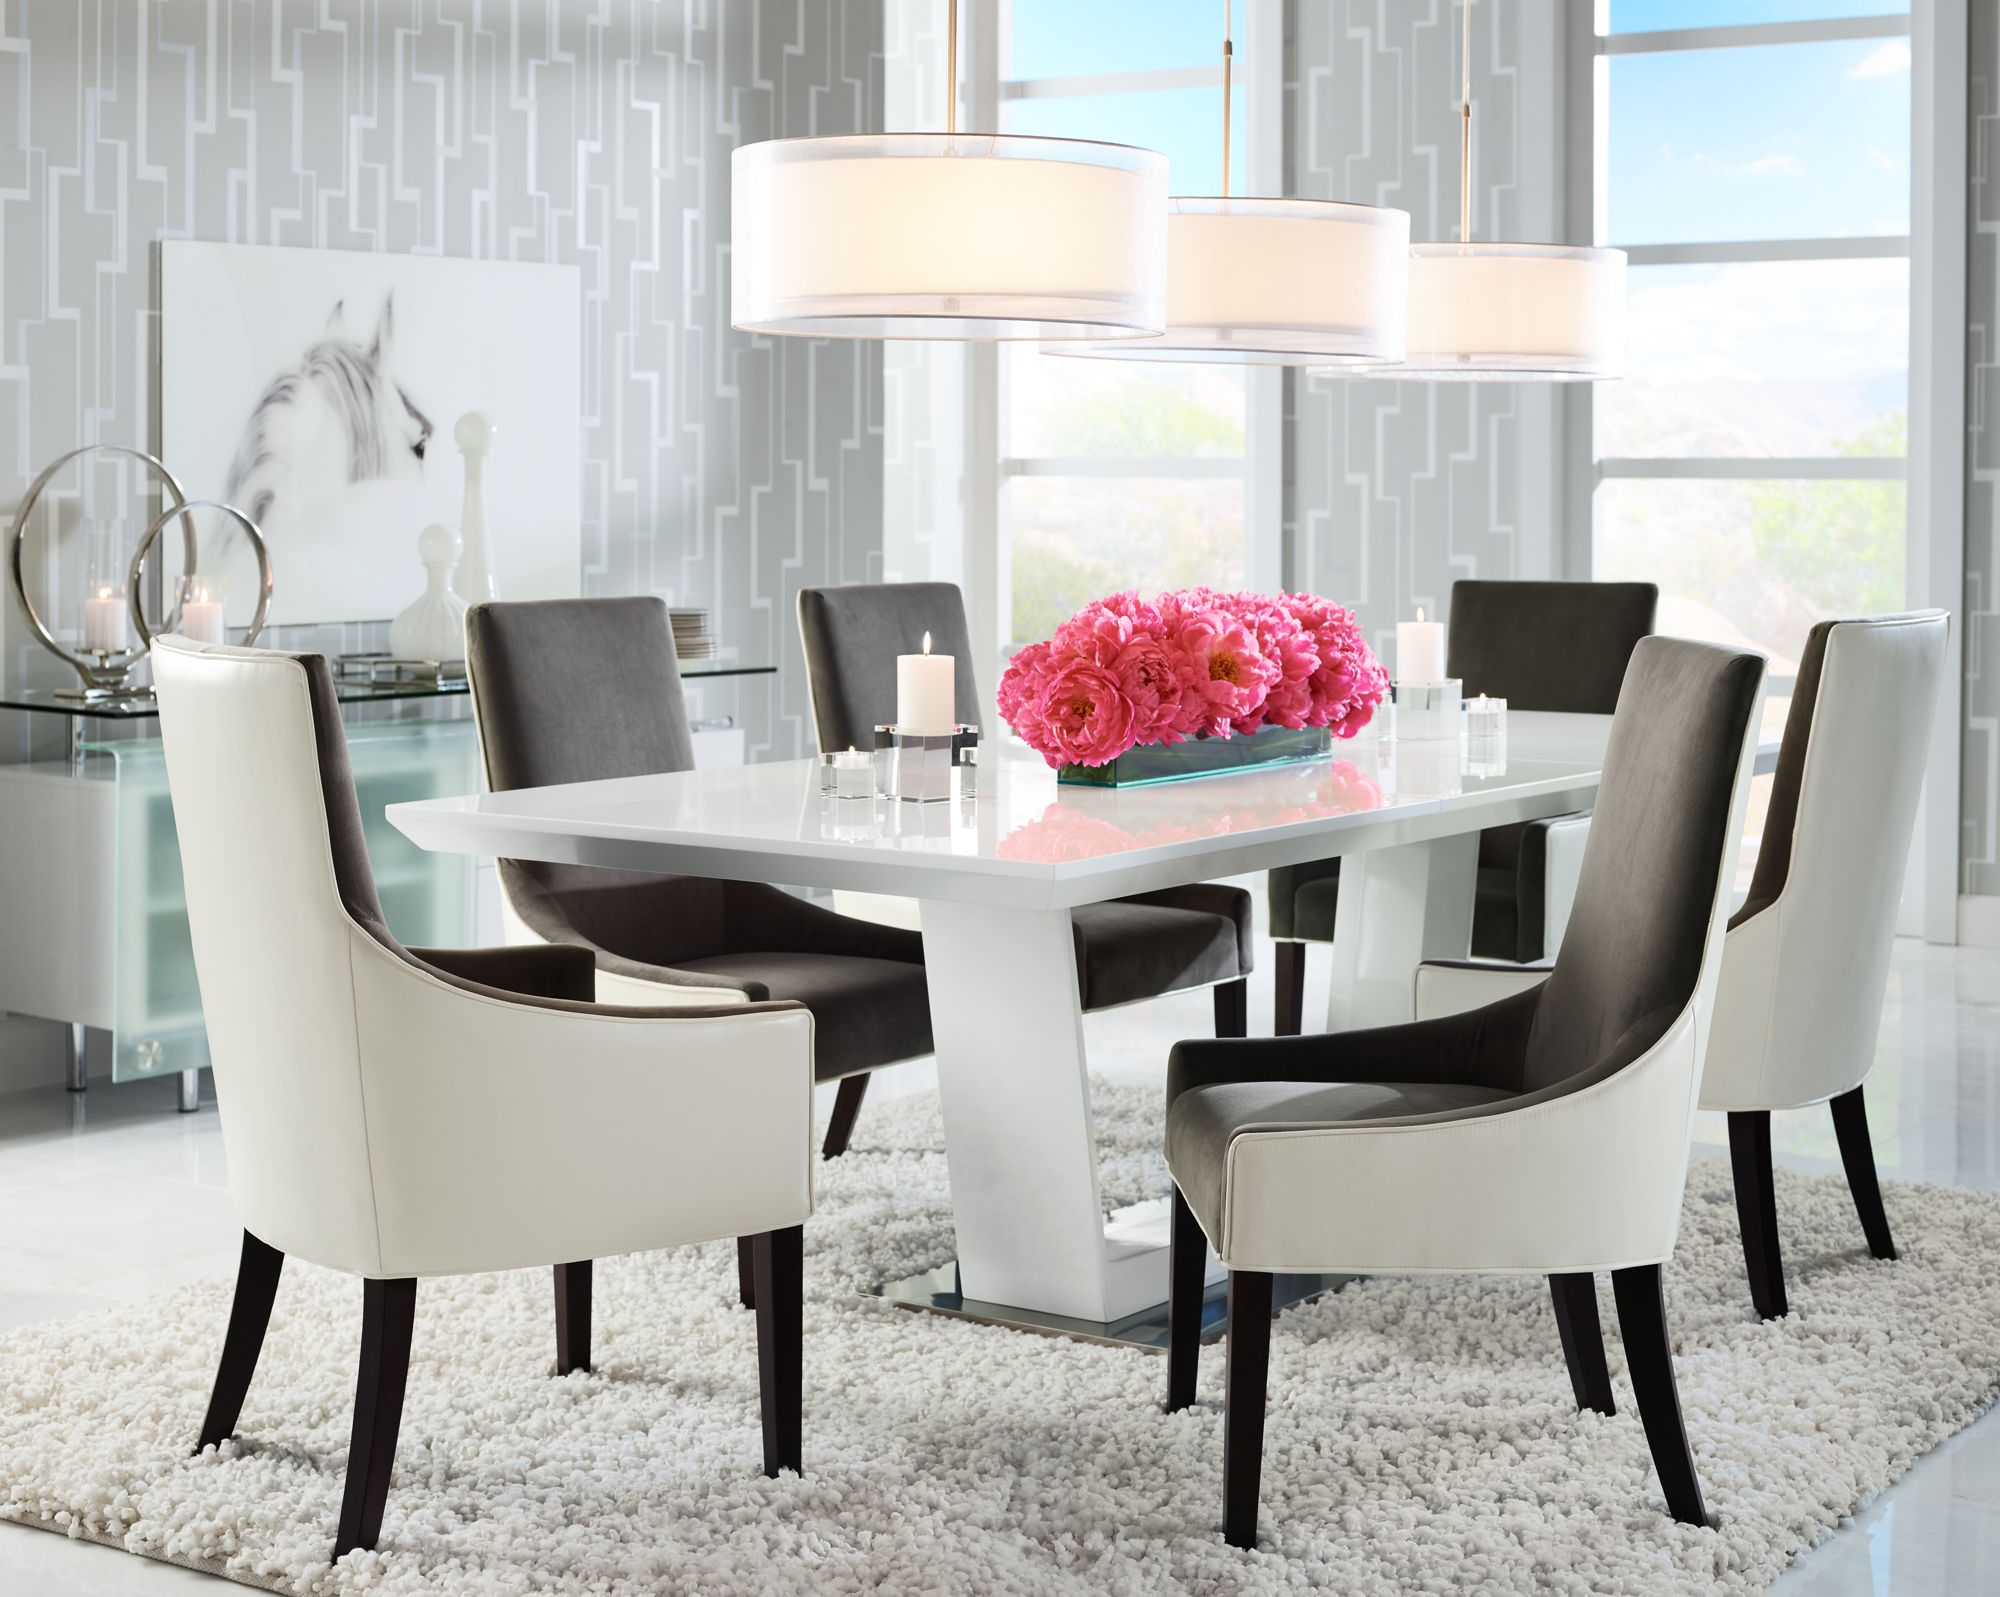 Perfect Large Drum Pendants Light A Long Dining Room Table.